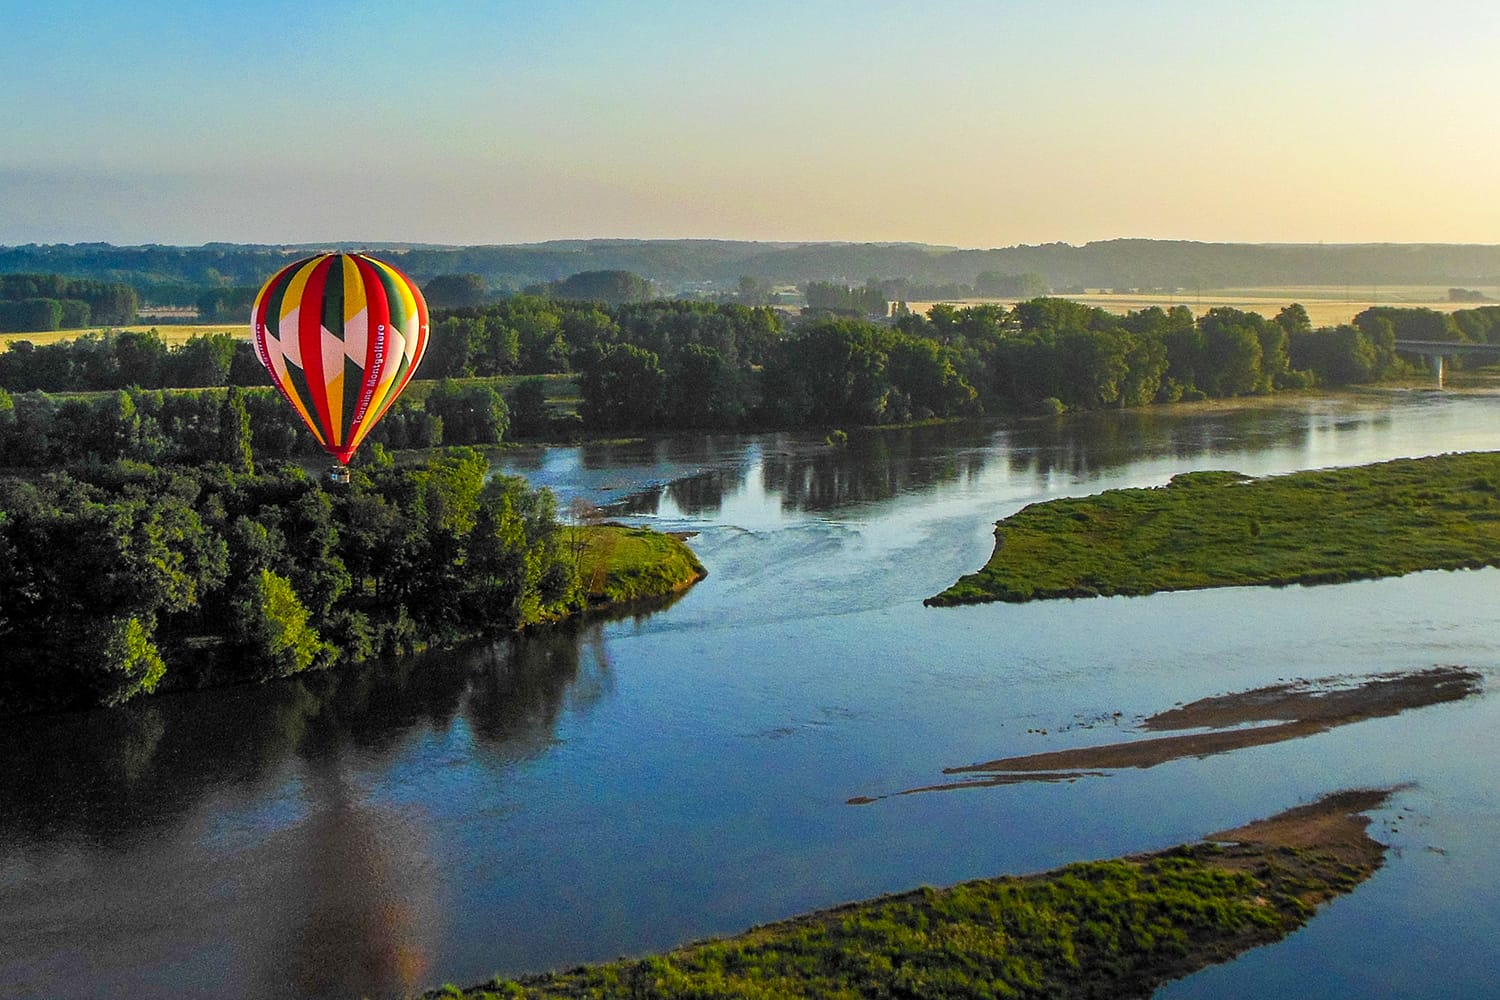 View of a hot air balloon over the Loire River in the early morning